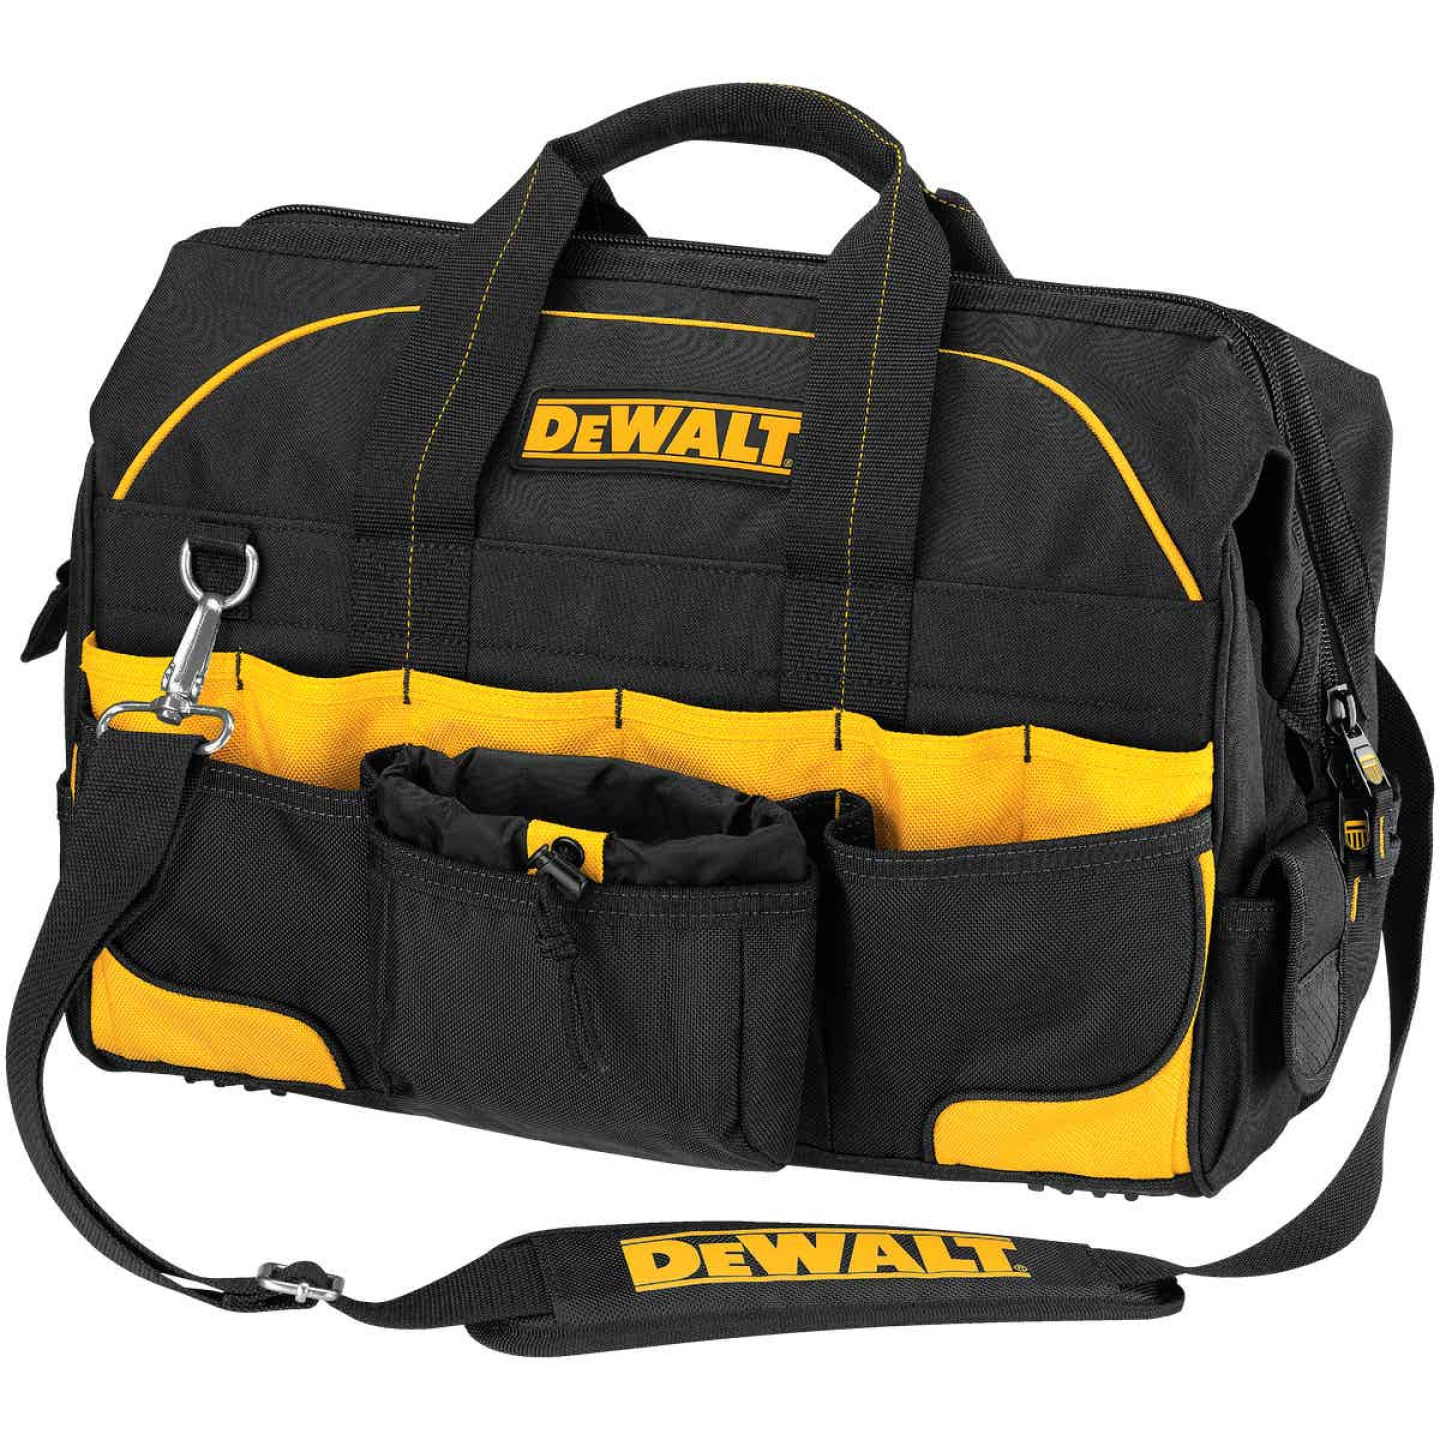 DeWalt 42-Pocket 18 In. Pro Contractor's Tool Bag Image 1